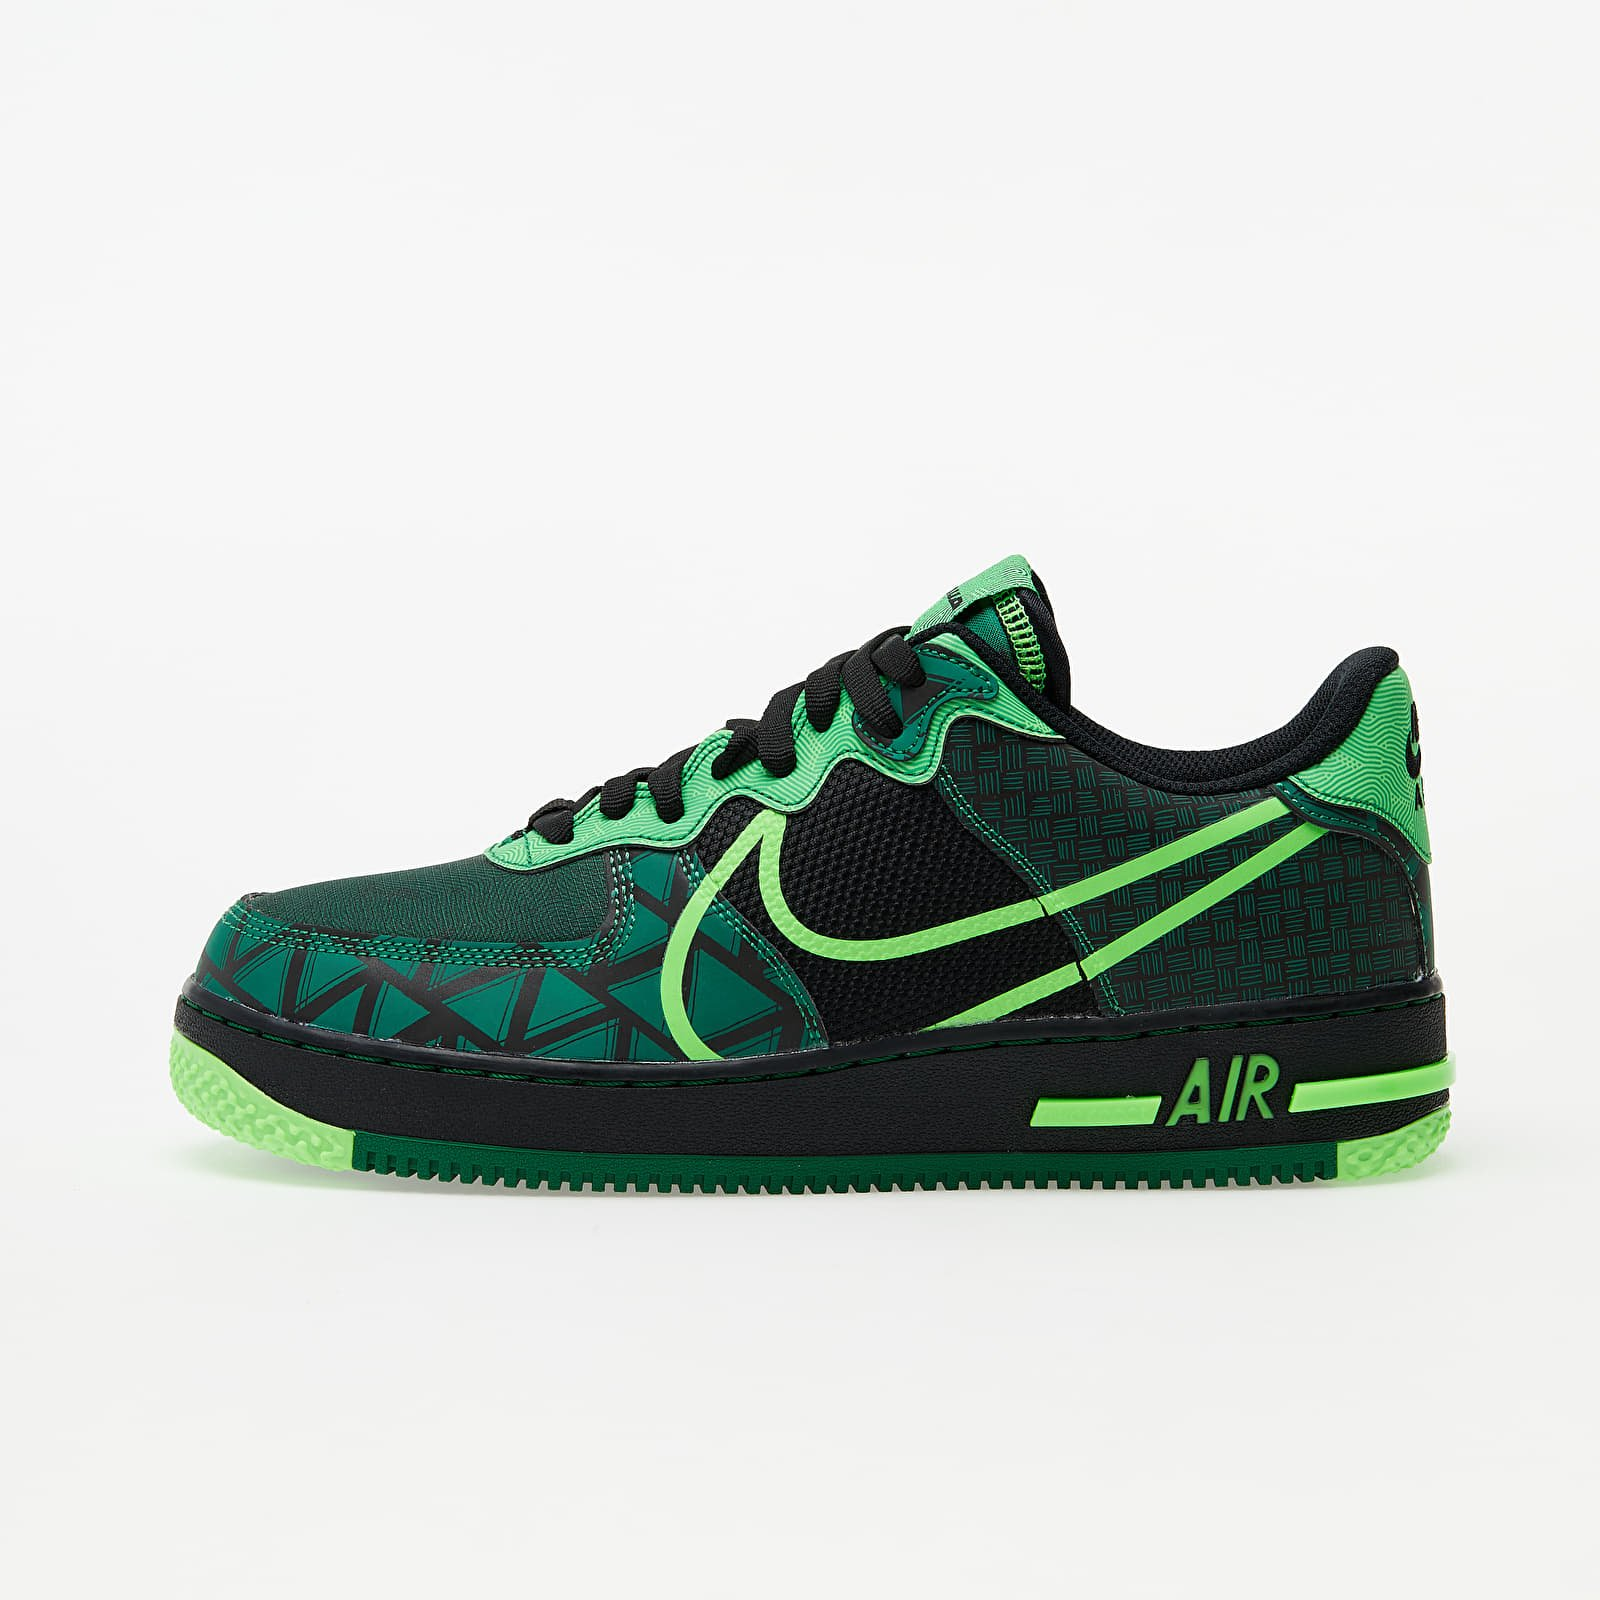 Nike Air Force 1 React QS Black/ Green Strike-Pine Green EUR 36